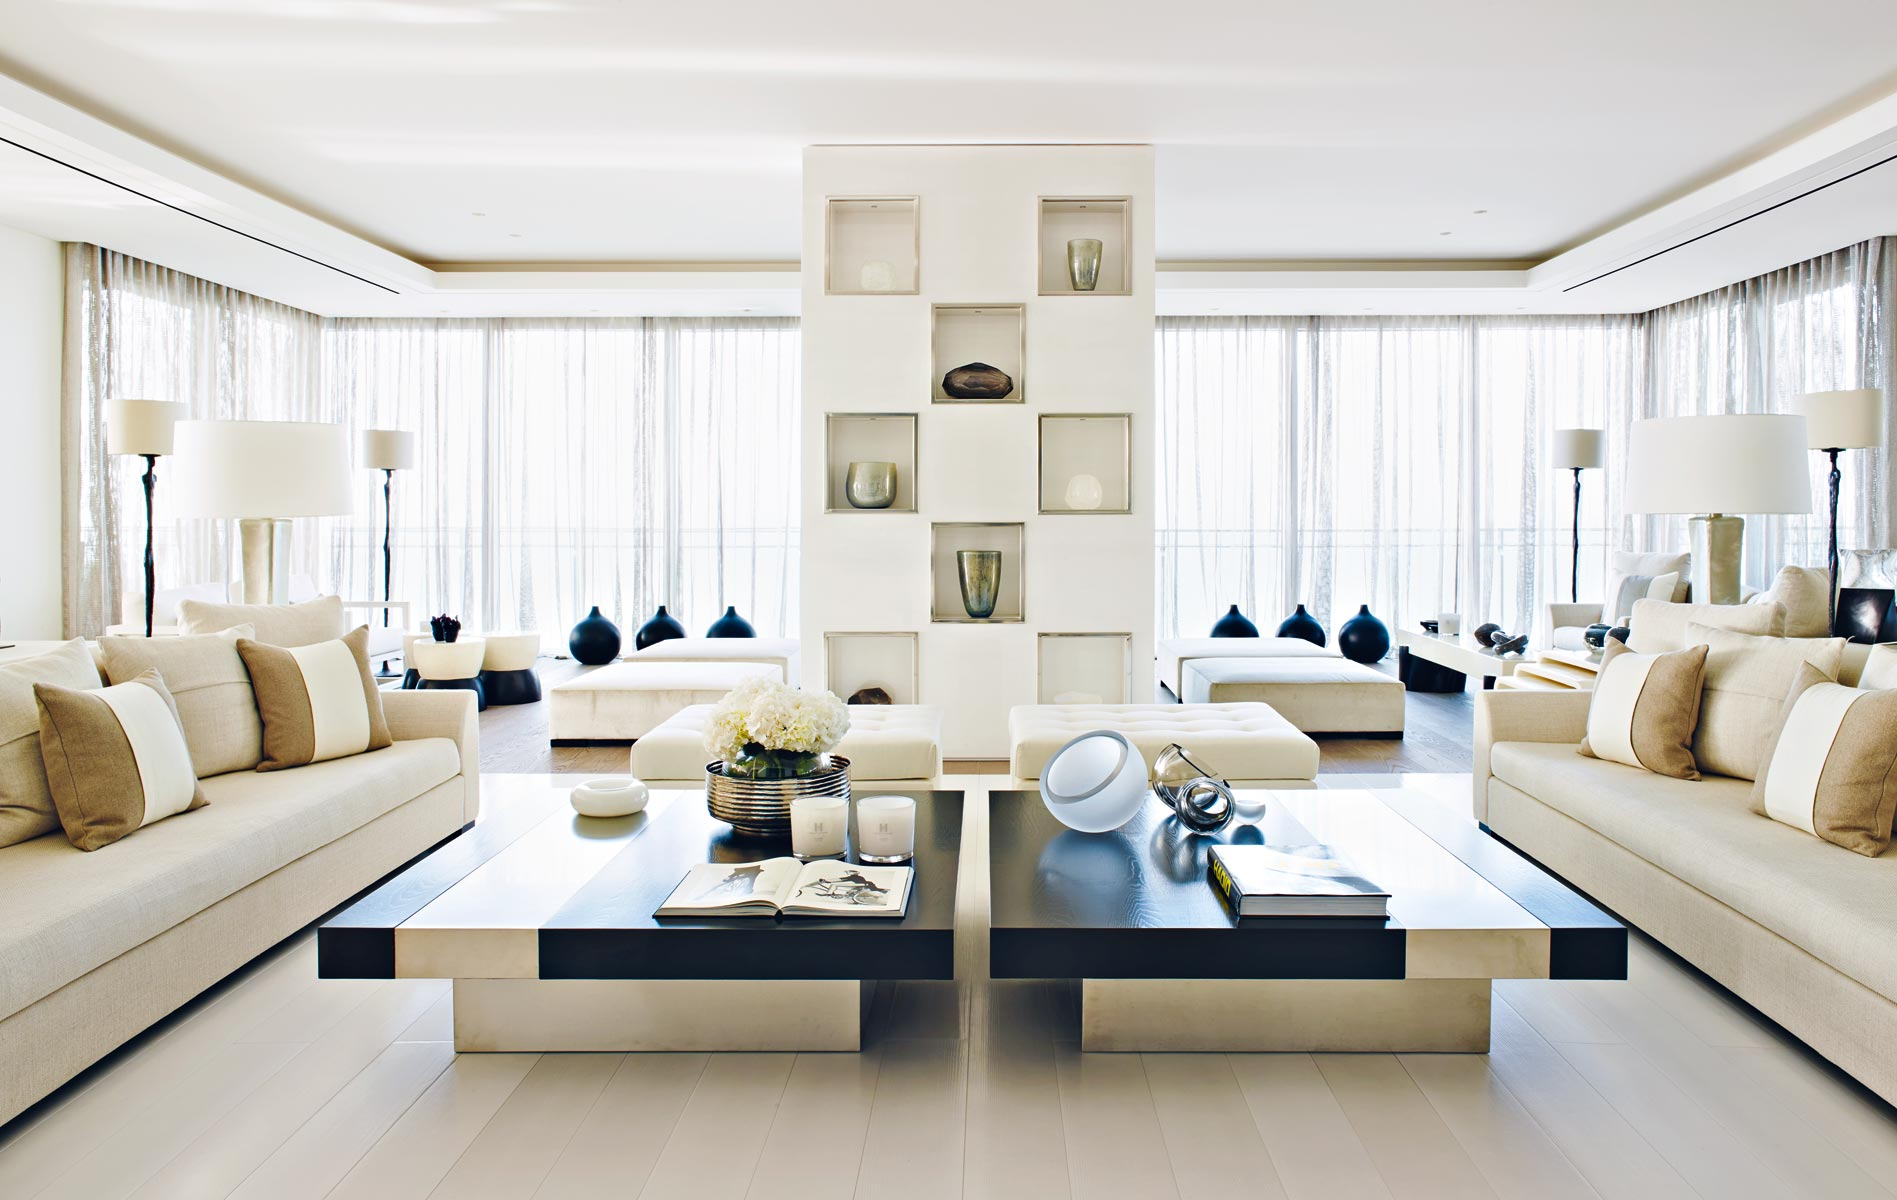 10 Kelly Hoppen Design Ideas